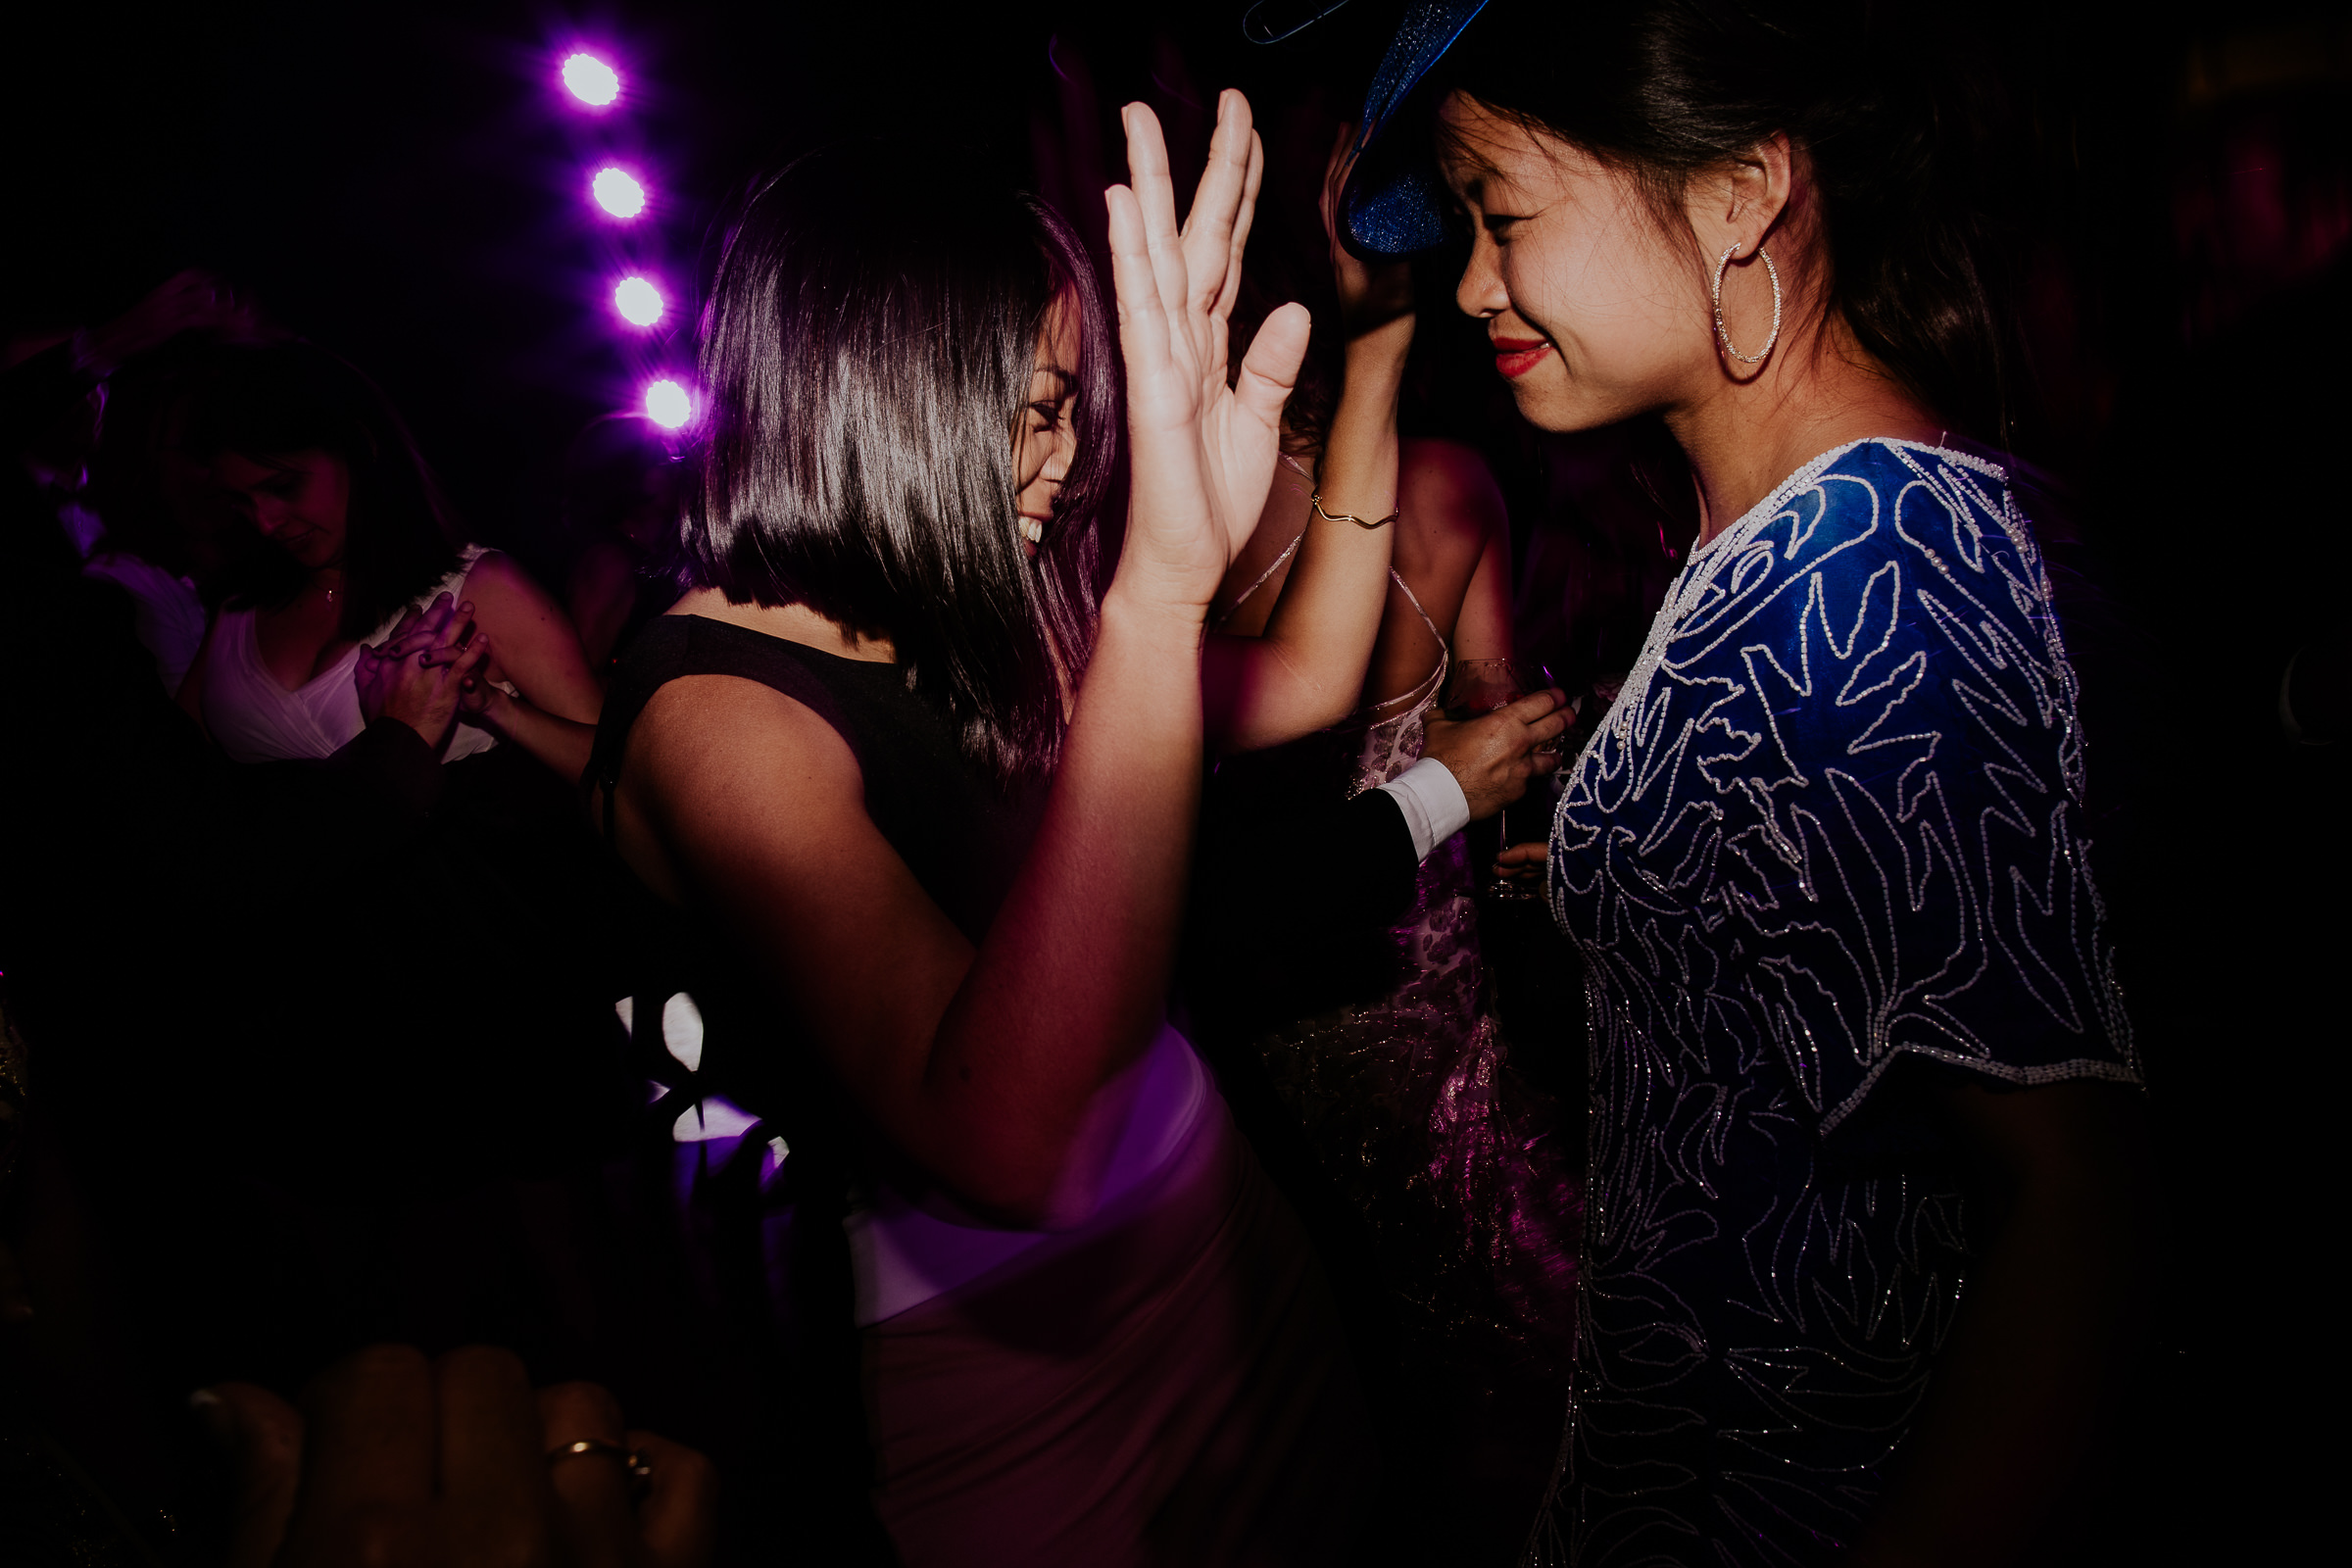 two women dancing at a wedding party